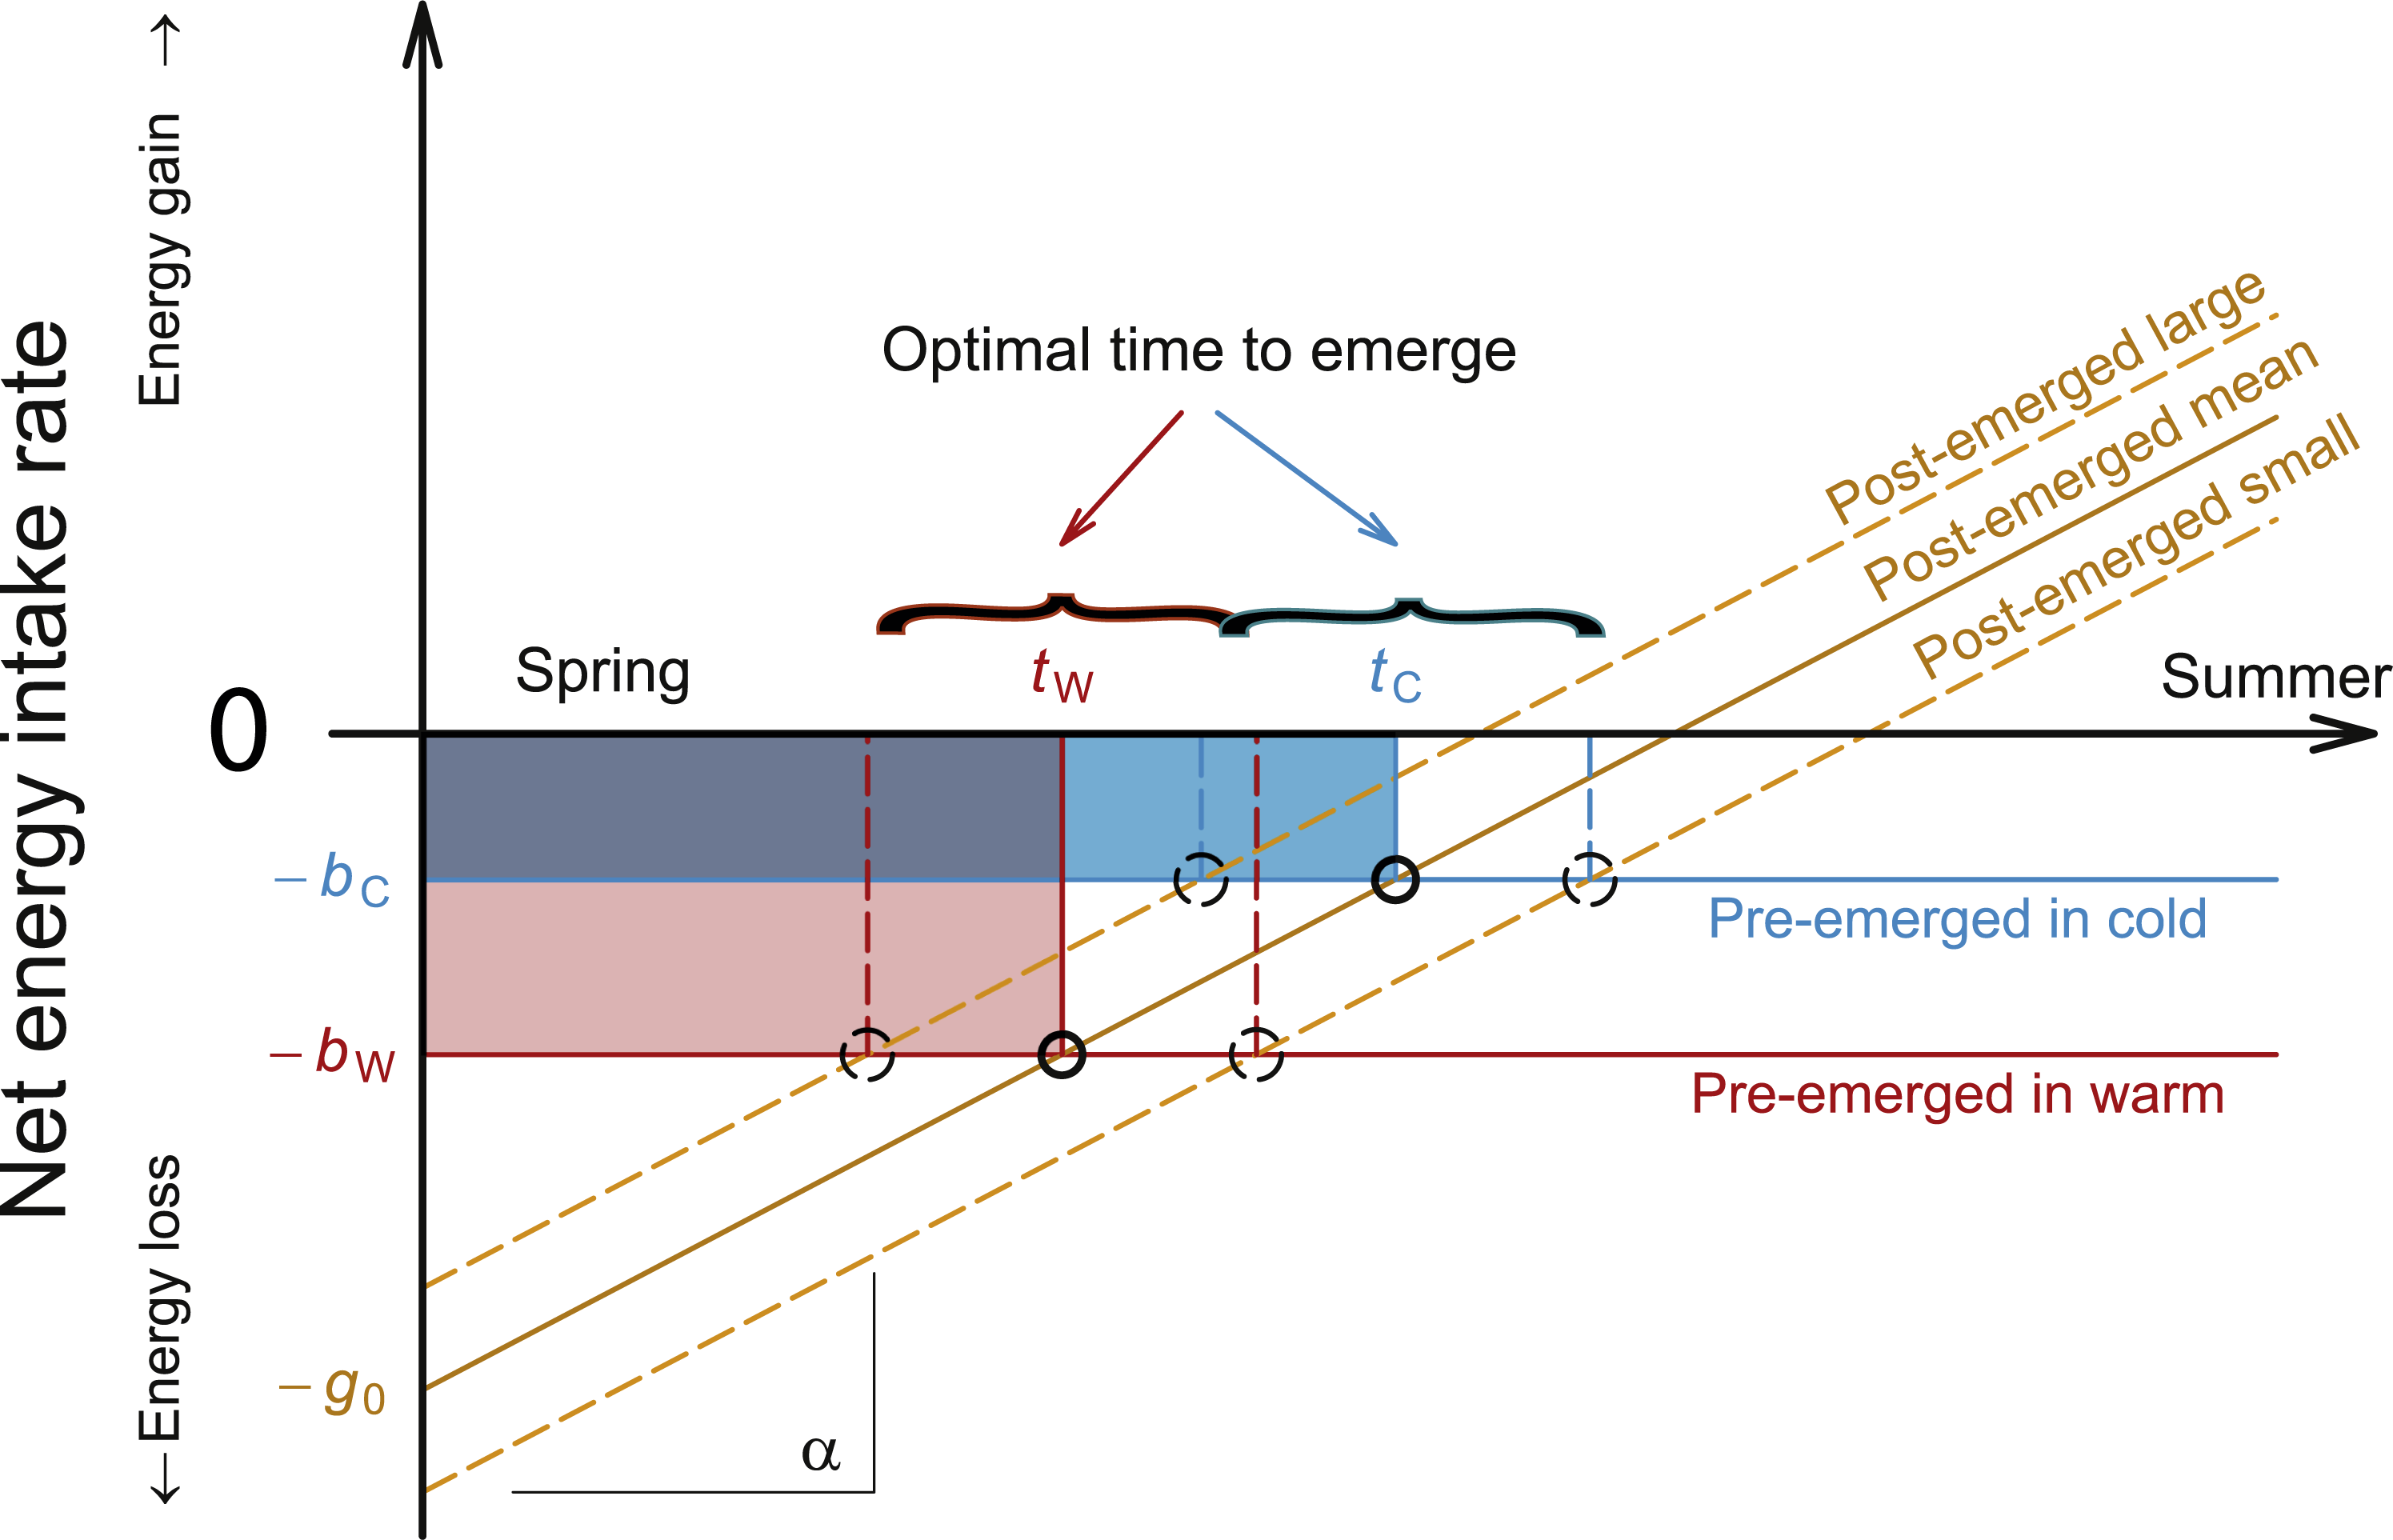 Overwintering Temperature And Body Condition Shift Emergence Dates Spring Schematic Download Full Size Image